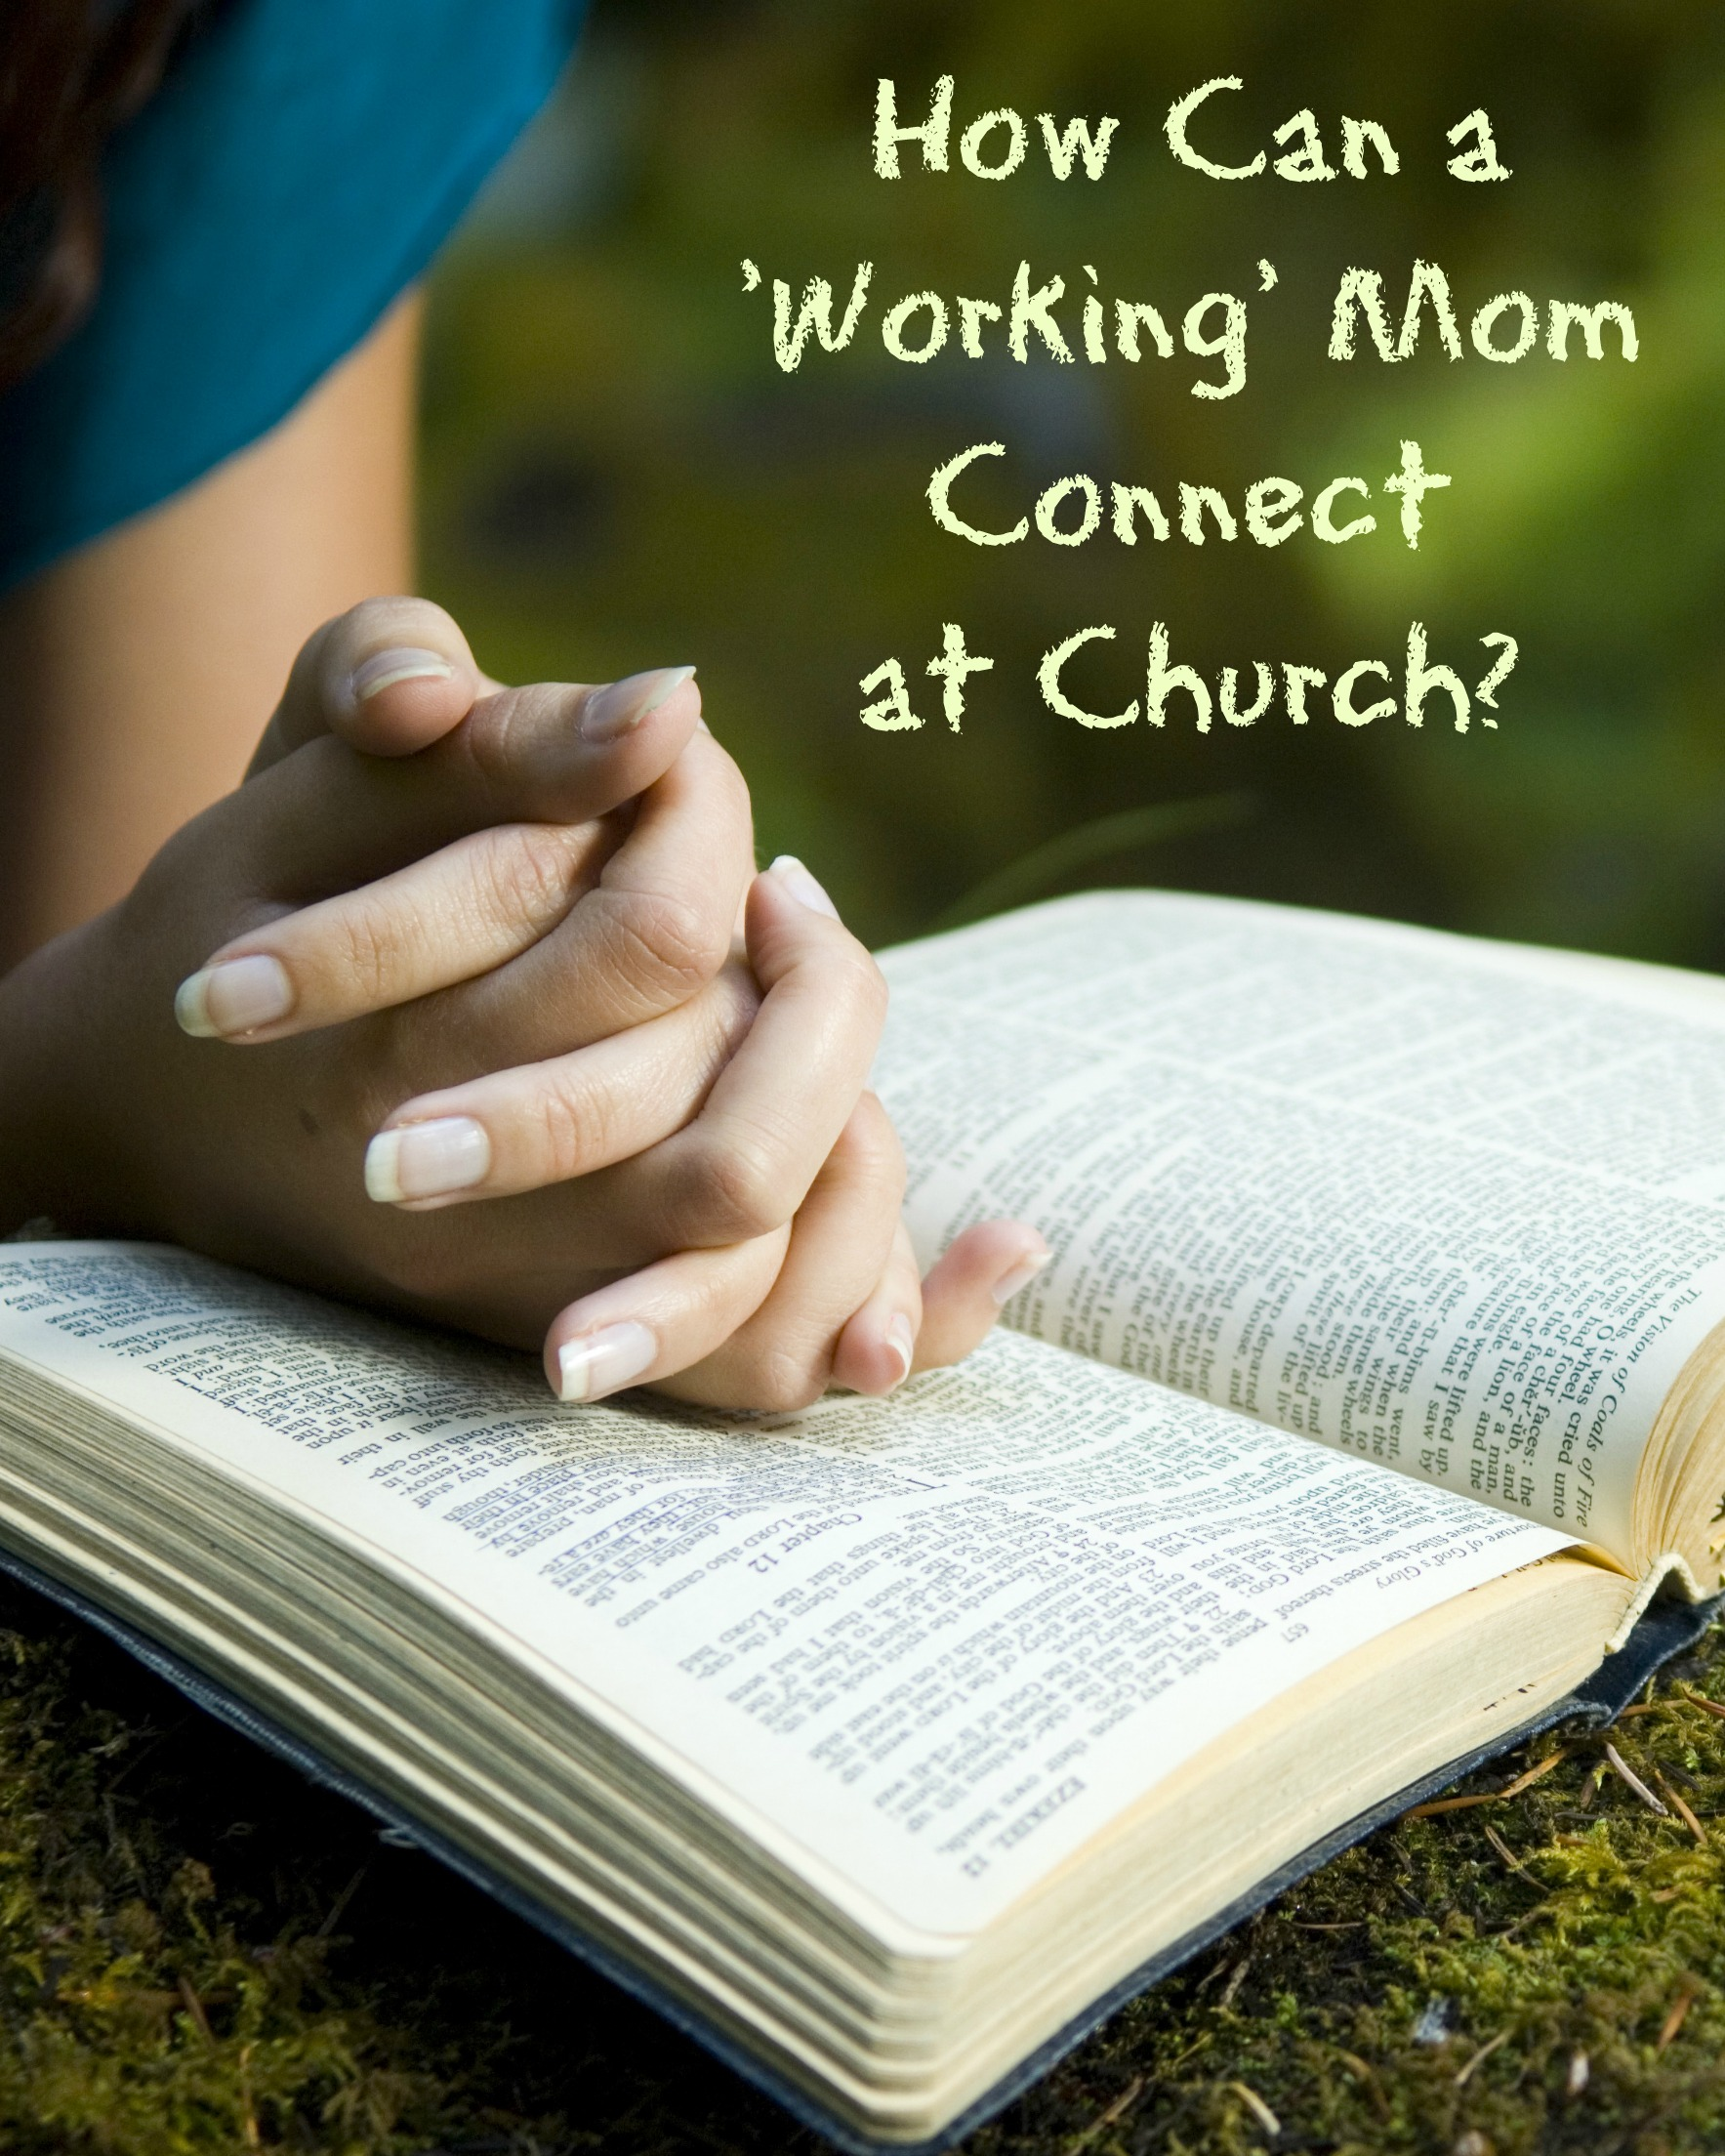 How Can a Working Mom Connect at Church?